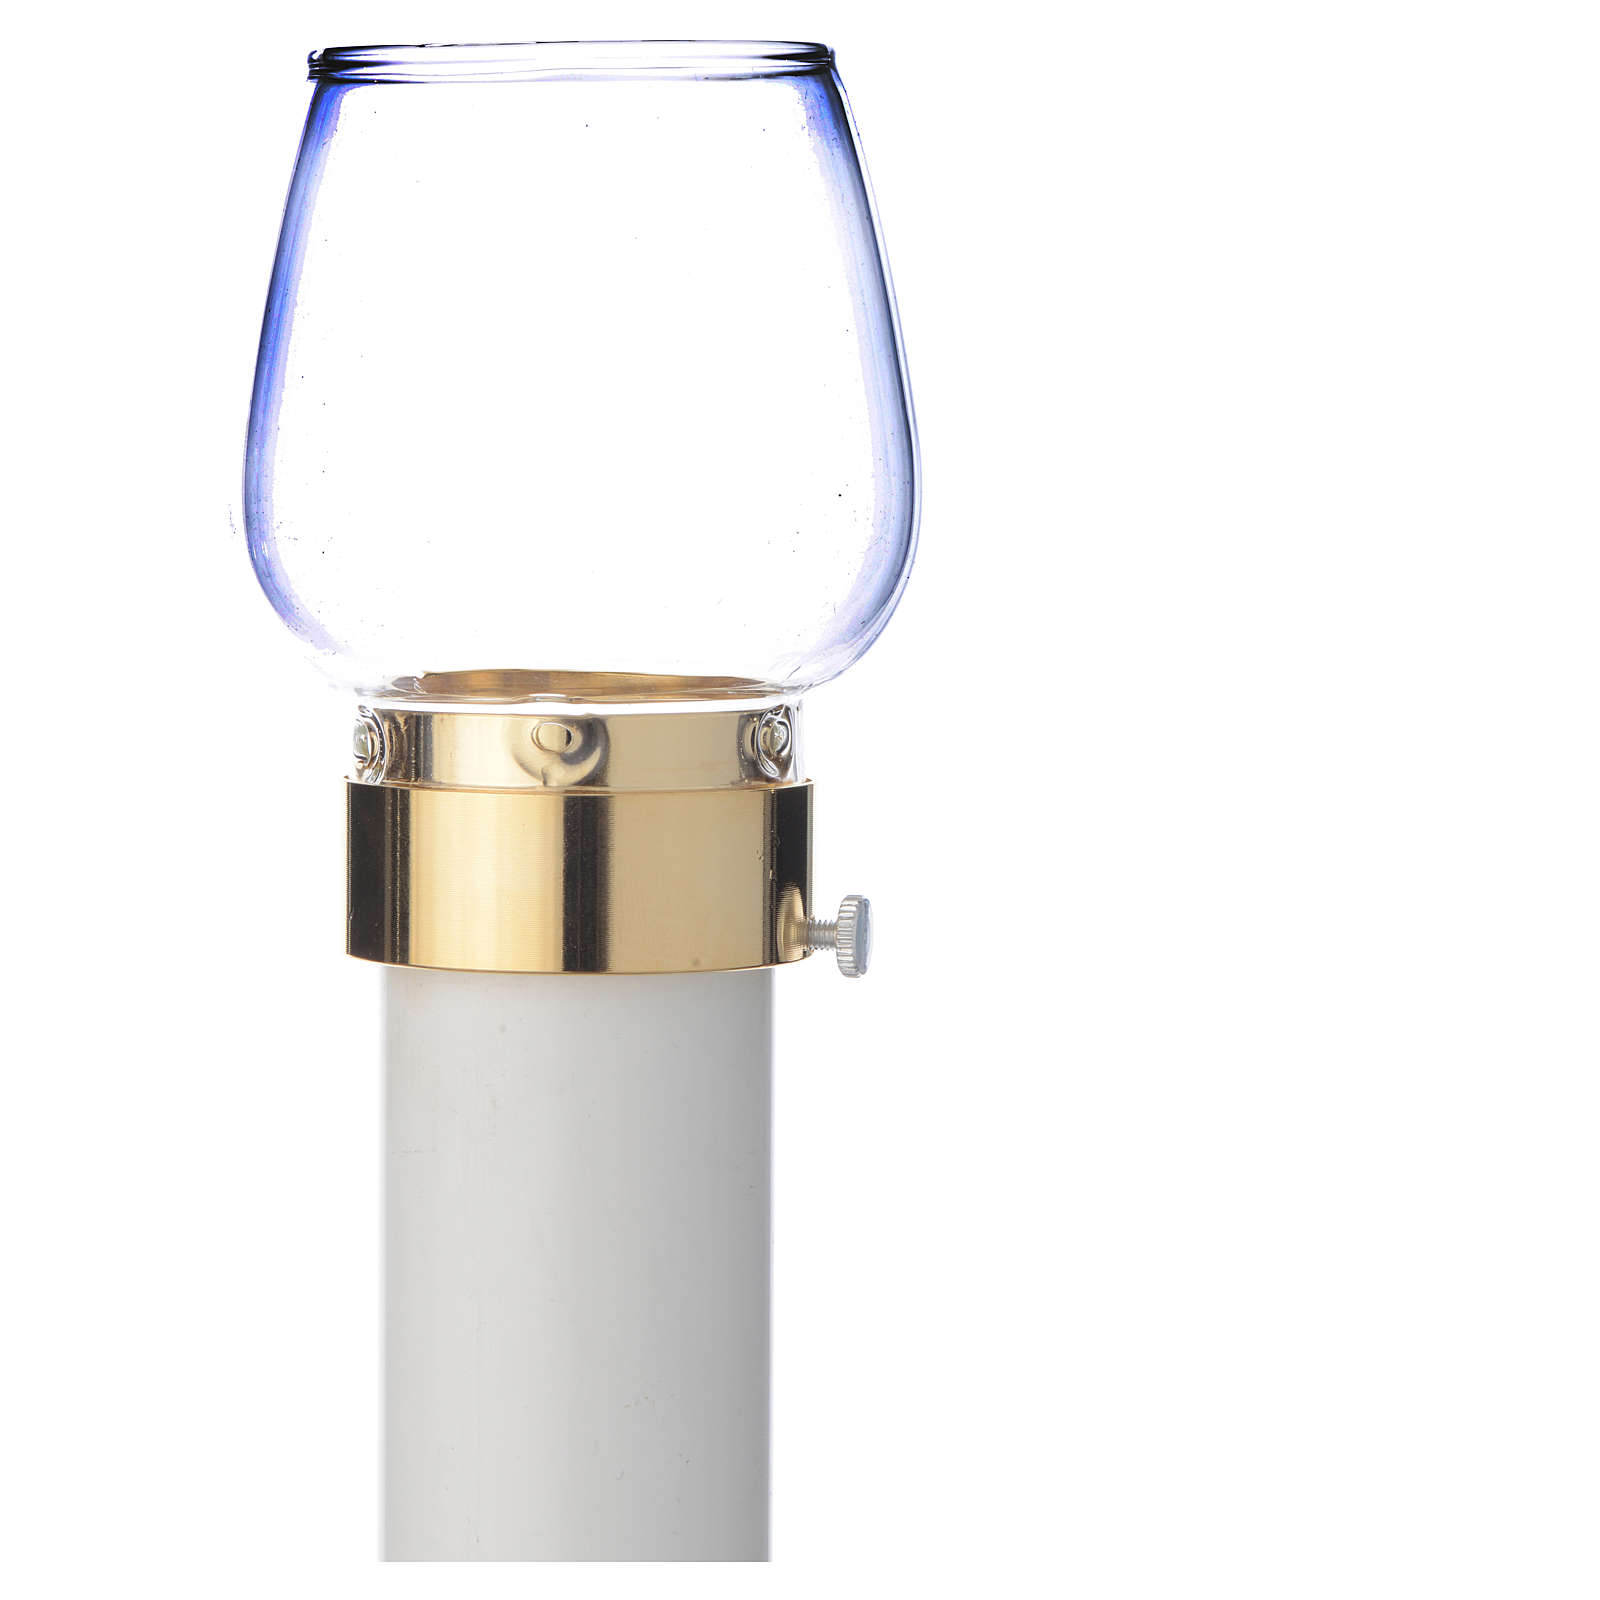 Wind-proof lamp, 30cm tall with golden base, 4cm diameter 3